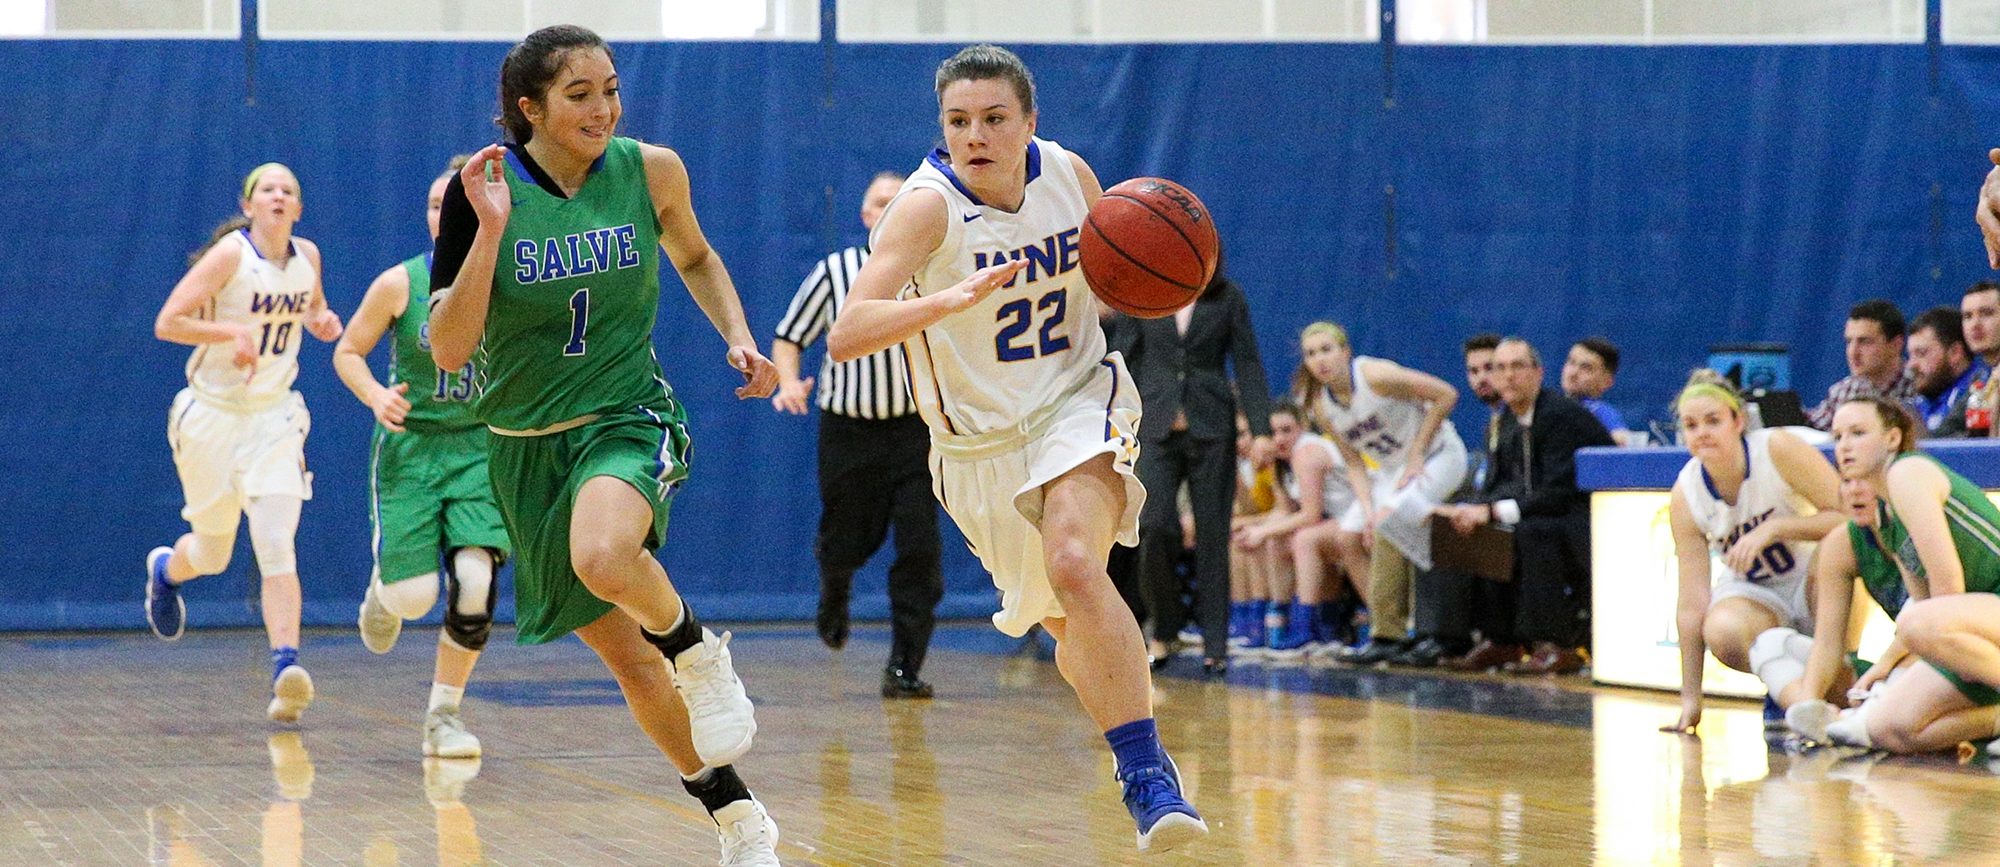 Sophomore guard Emily Farrell scored a career-high 17 points in her first collegiate start on Tuesday night as Western New England picked up its first win at Eastern Nazarene in five years (photo by Chris Marion).